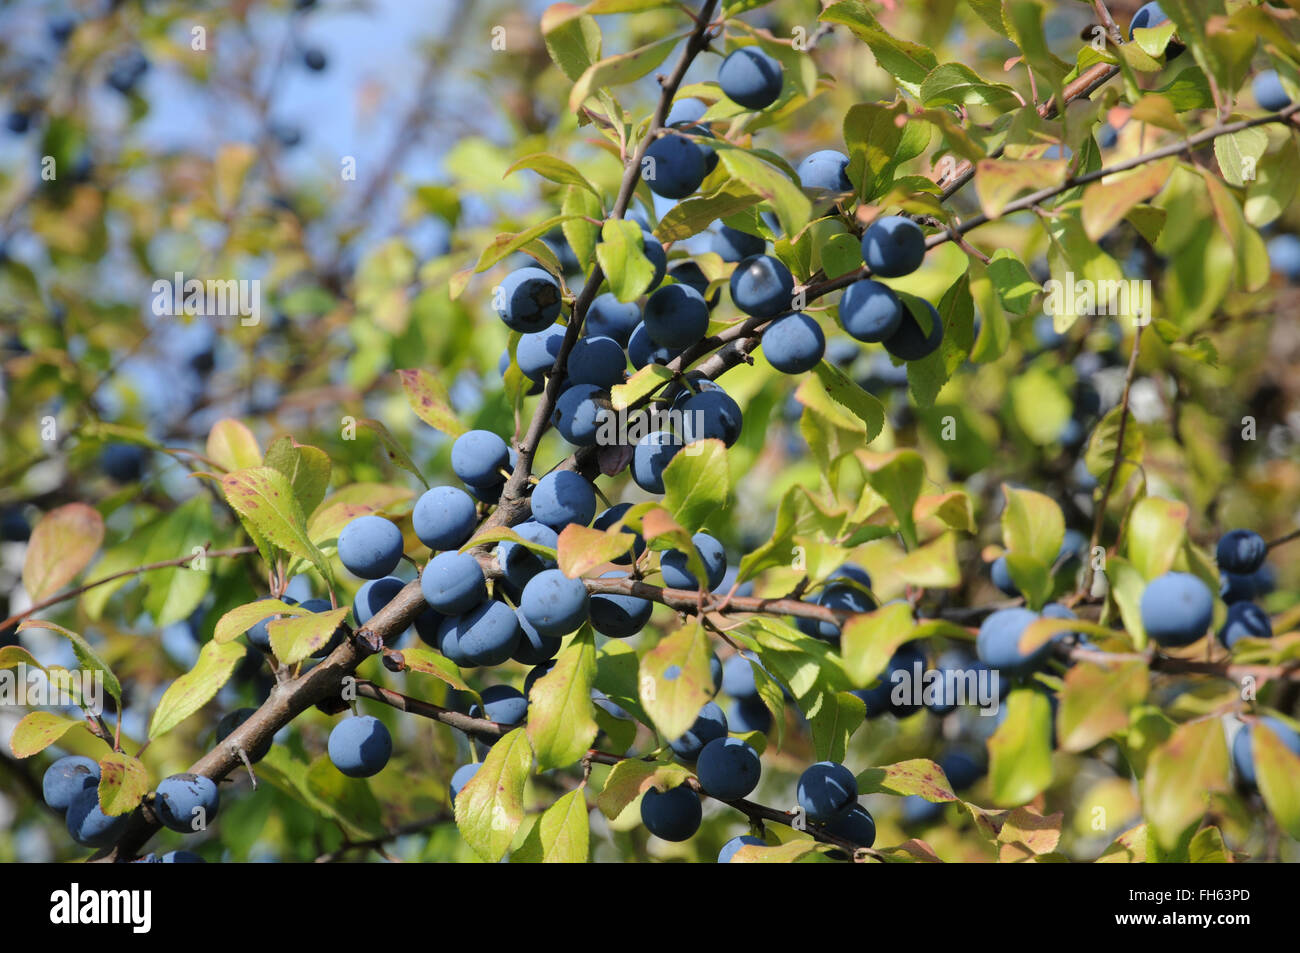 Blackthorn - Stock Image